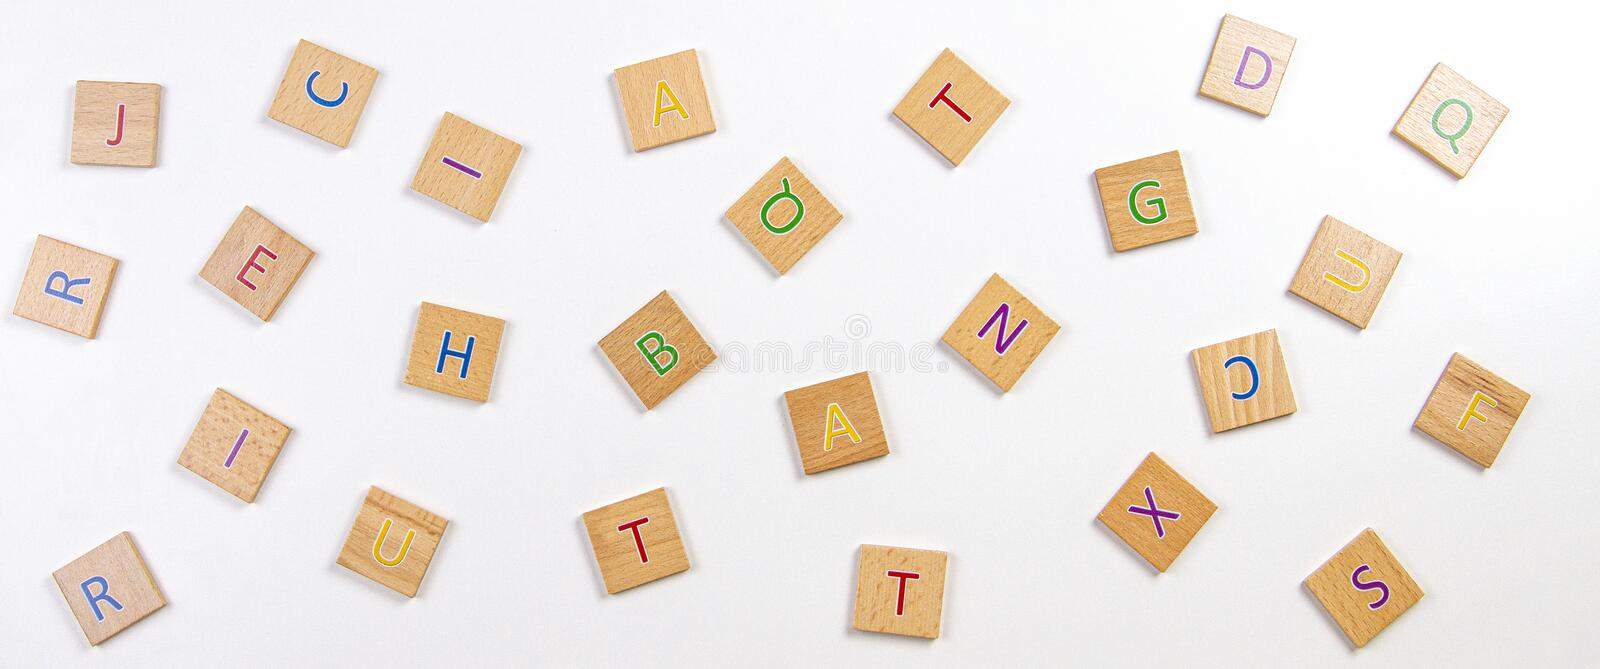 Scattered alphabet letters wooden blocks tiles on white table background. Top view stock photo